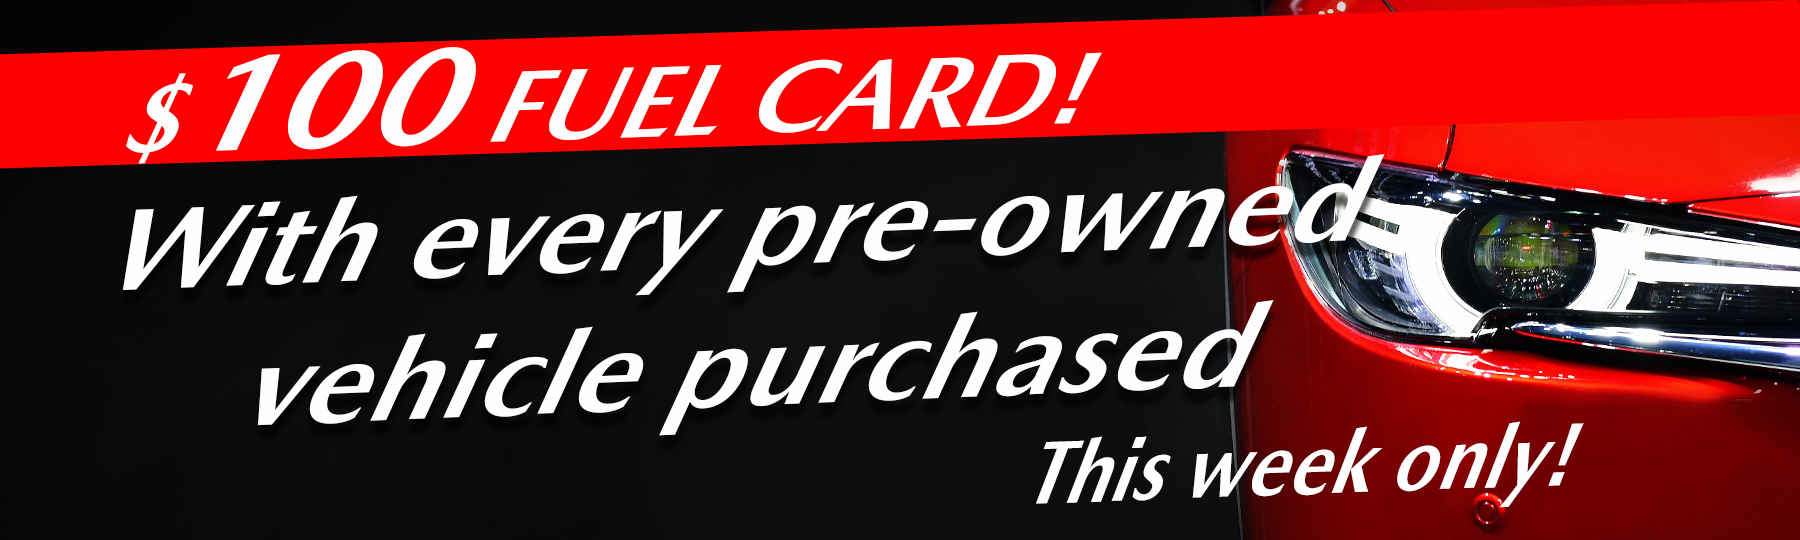 $100 FUEL CARD WITH EVERY USED CAR PURCHASED